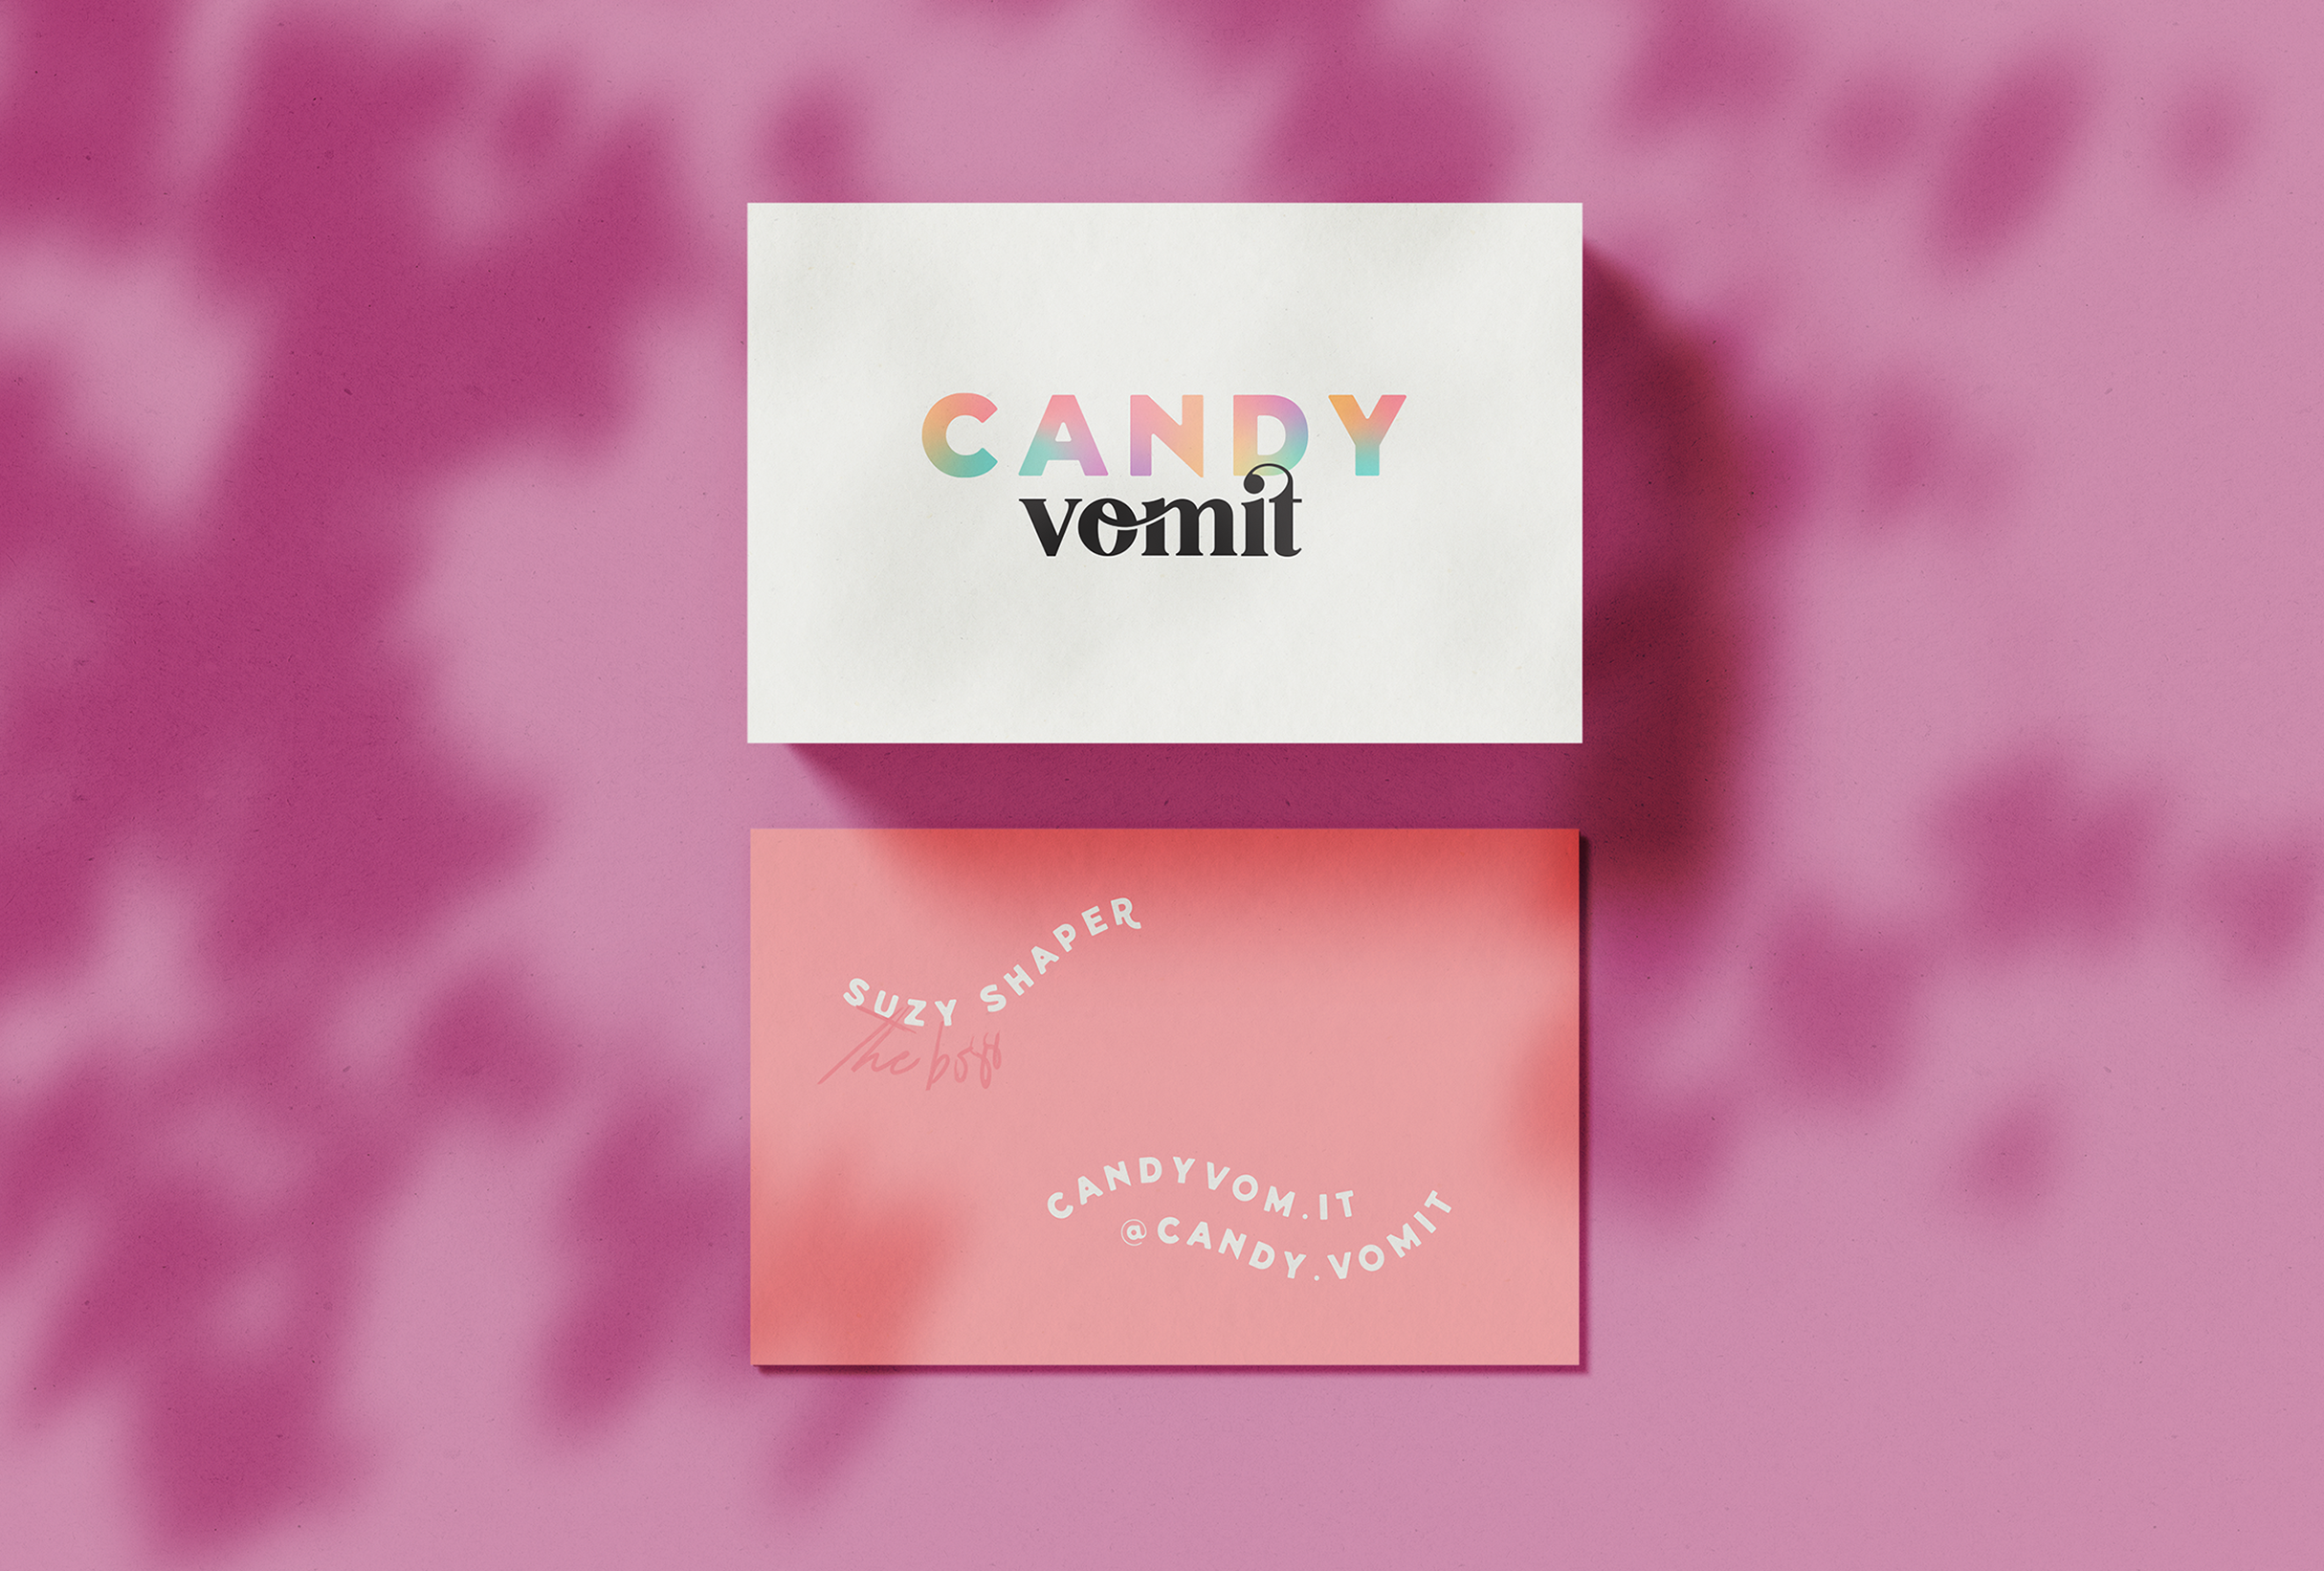 Business cards for Candy Vomit, a conceptual hair dye brand that specialises in sickly-sweet colours - designed by Wiltshire-based graphic designer, Kaye Huett